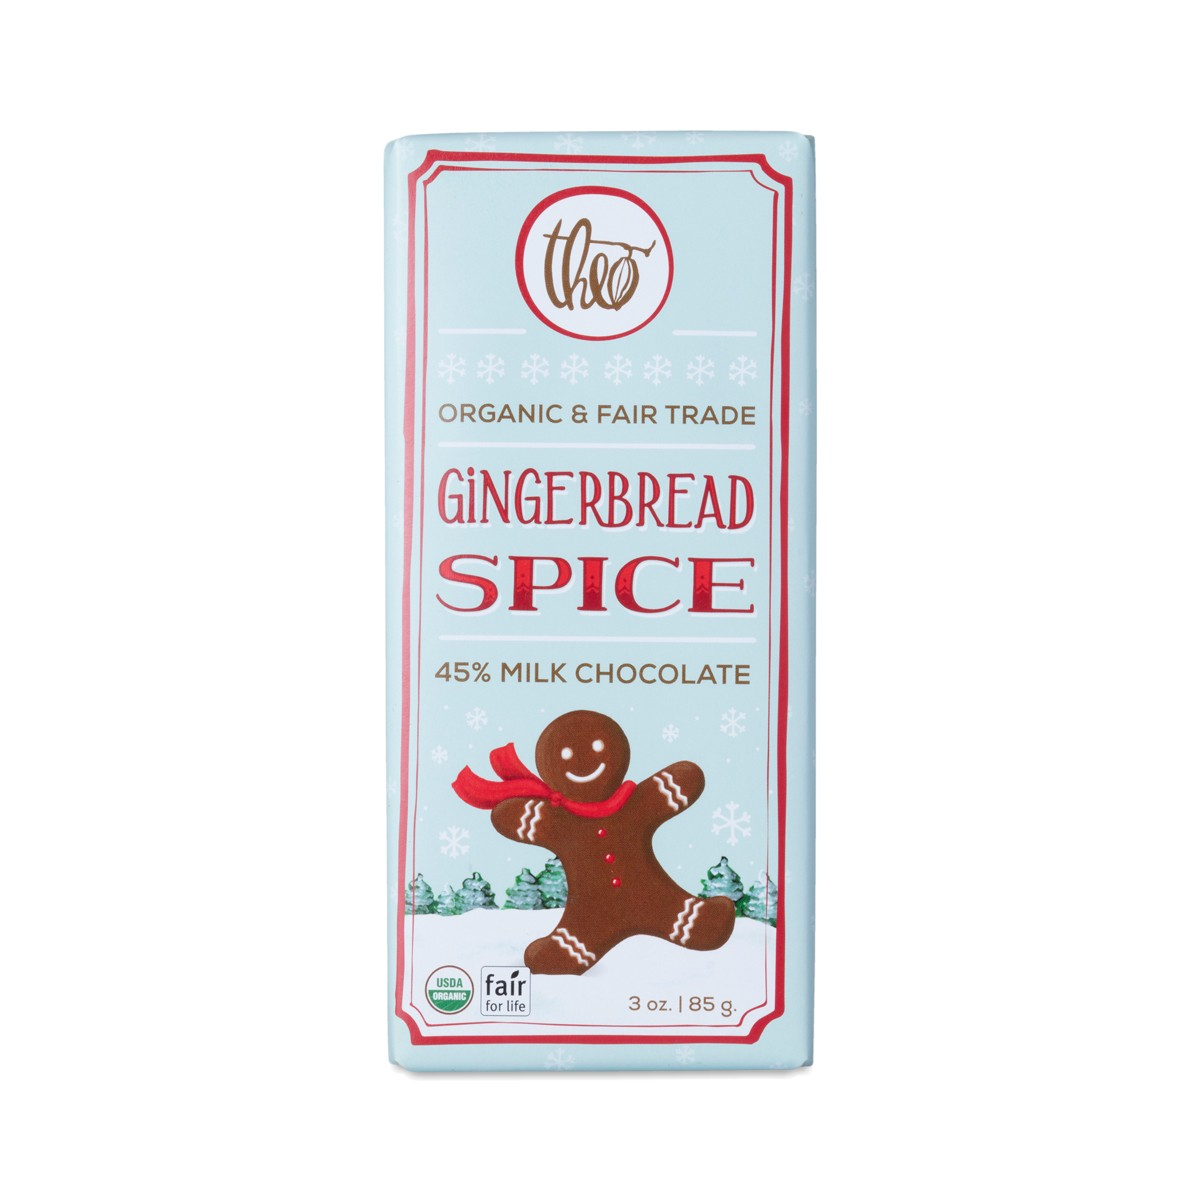 theo chocolate gingerbread spice chocolate bar 3 oz bar leave a review